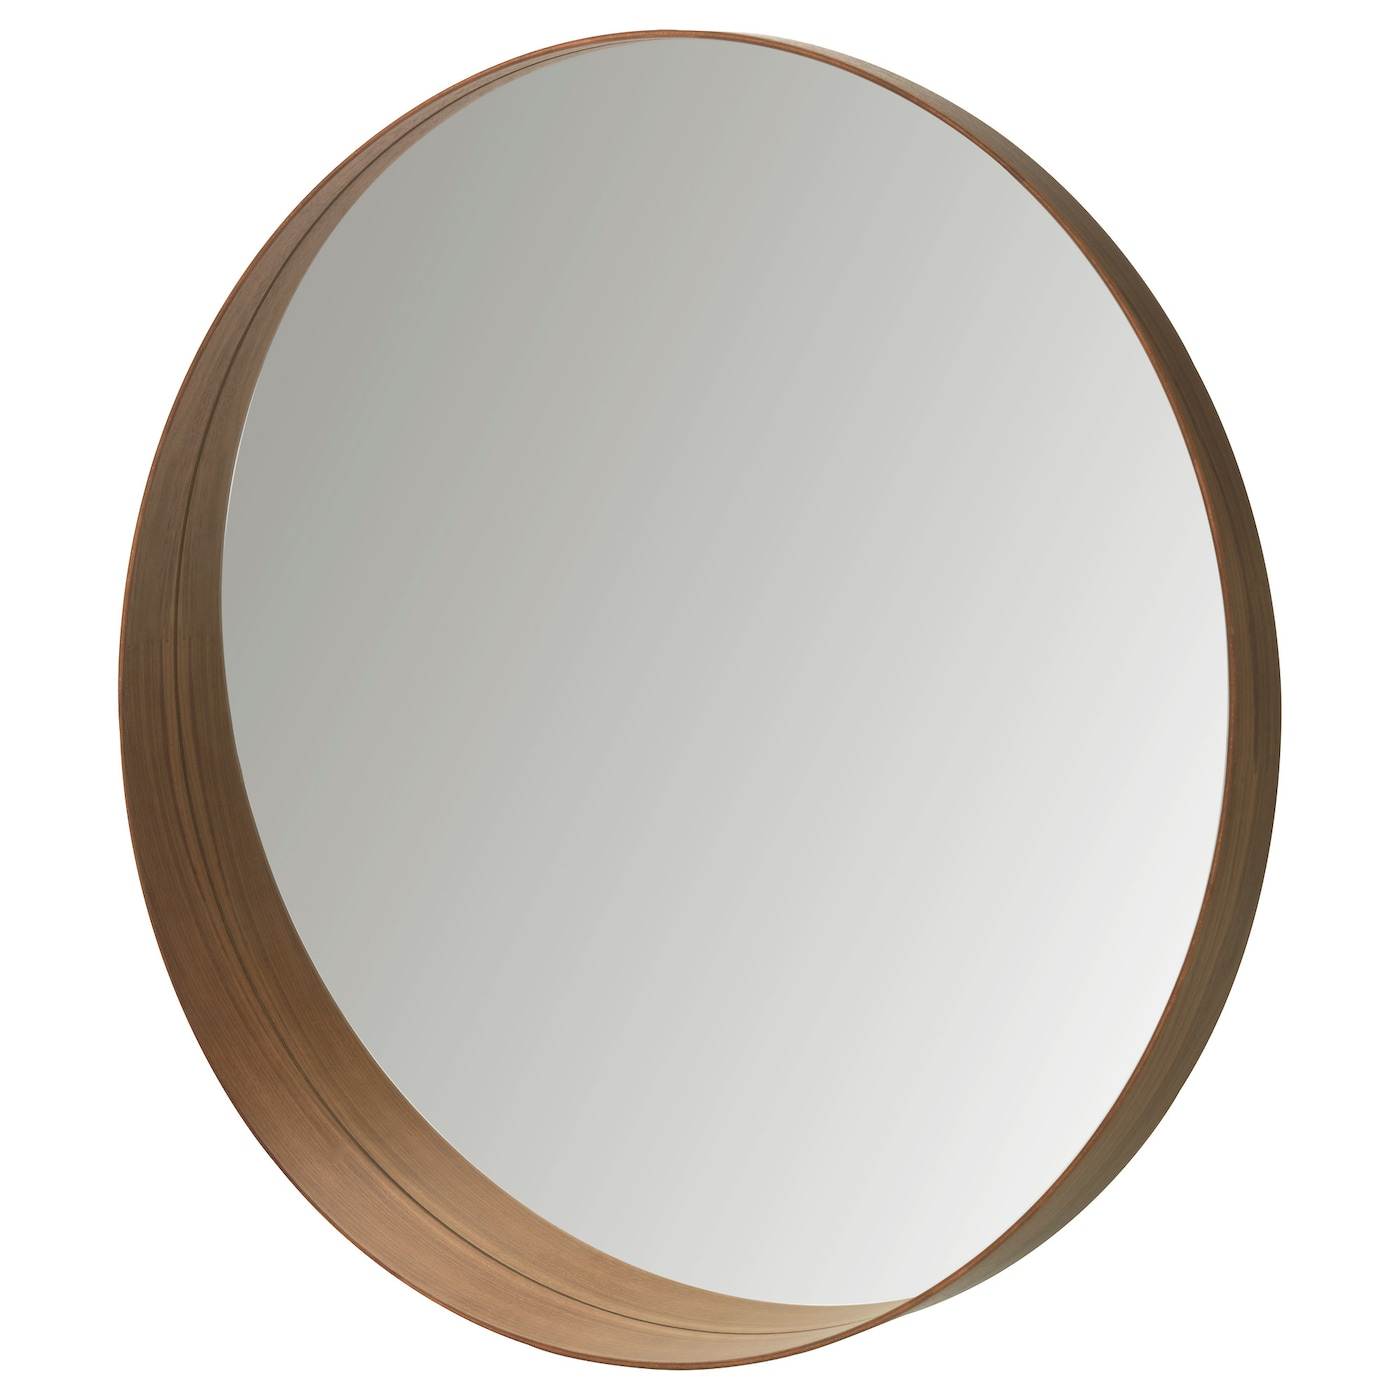 Round mirrors ikea ireland dublin for Miroir design rond